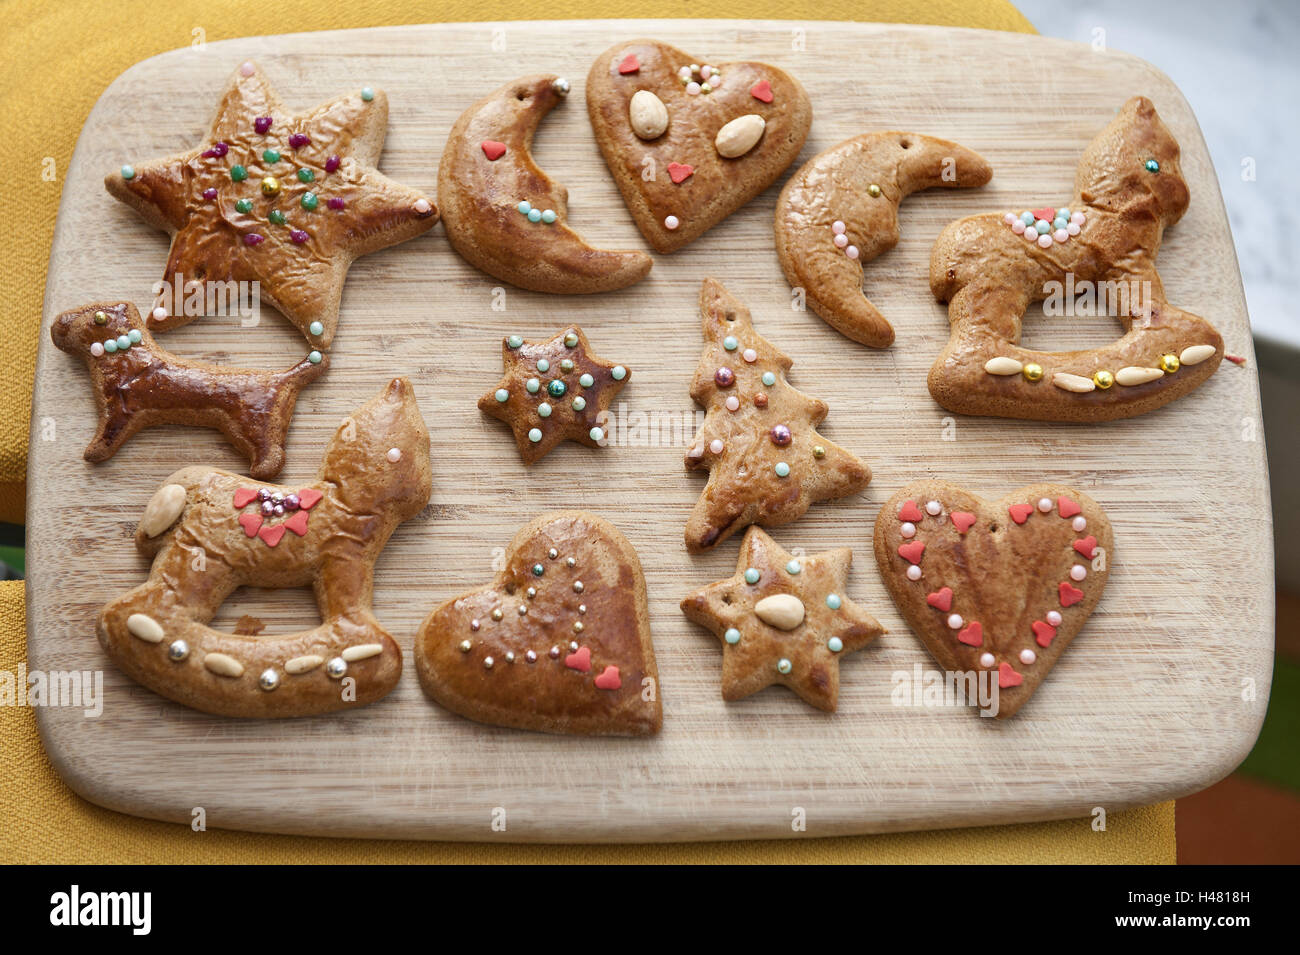 Gingerbread Decorates Motifs Passed Away Crumble Wooden Stock